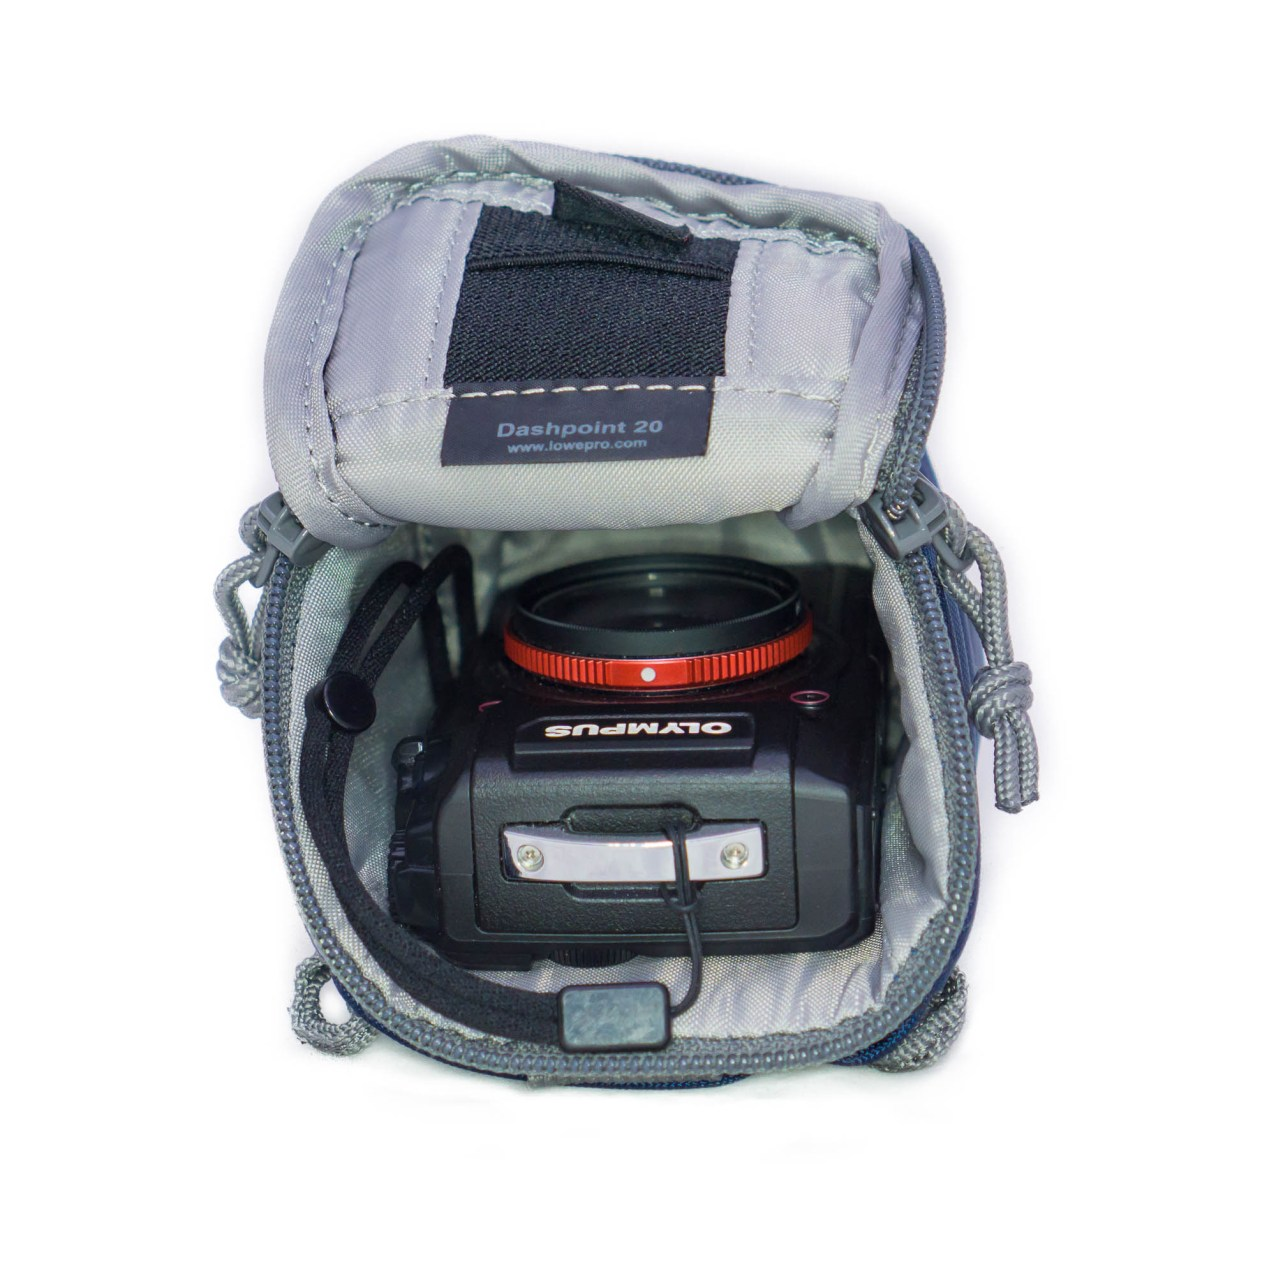 The Lowepro Dashpoint 20 fits the TG-5 perfectly, but the sole compartment severely limits its versatility.